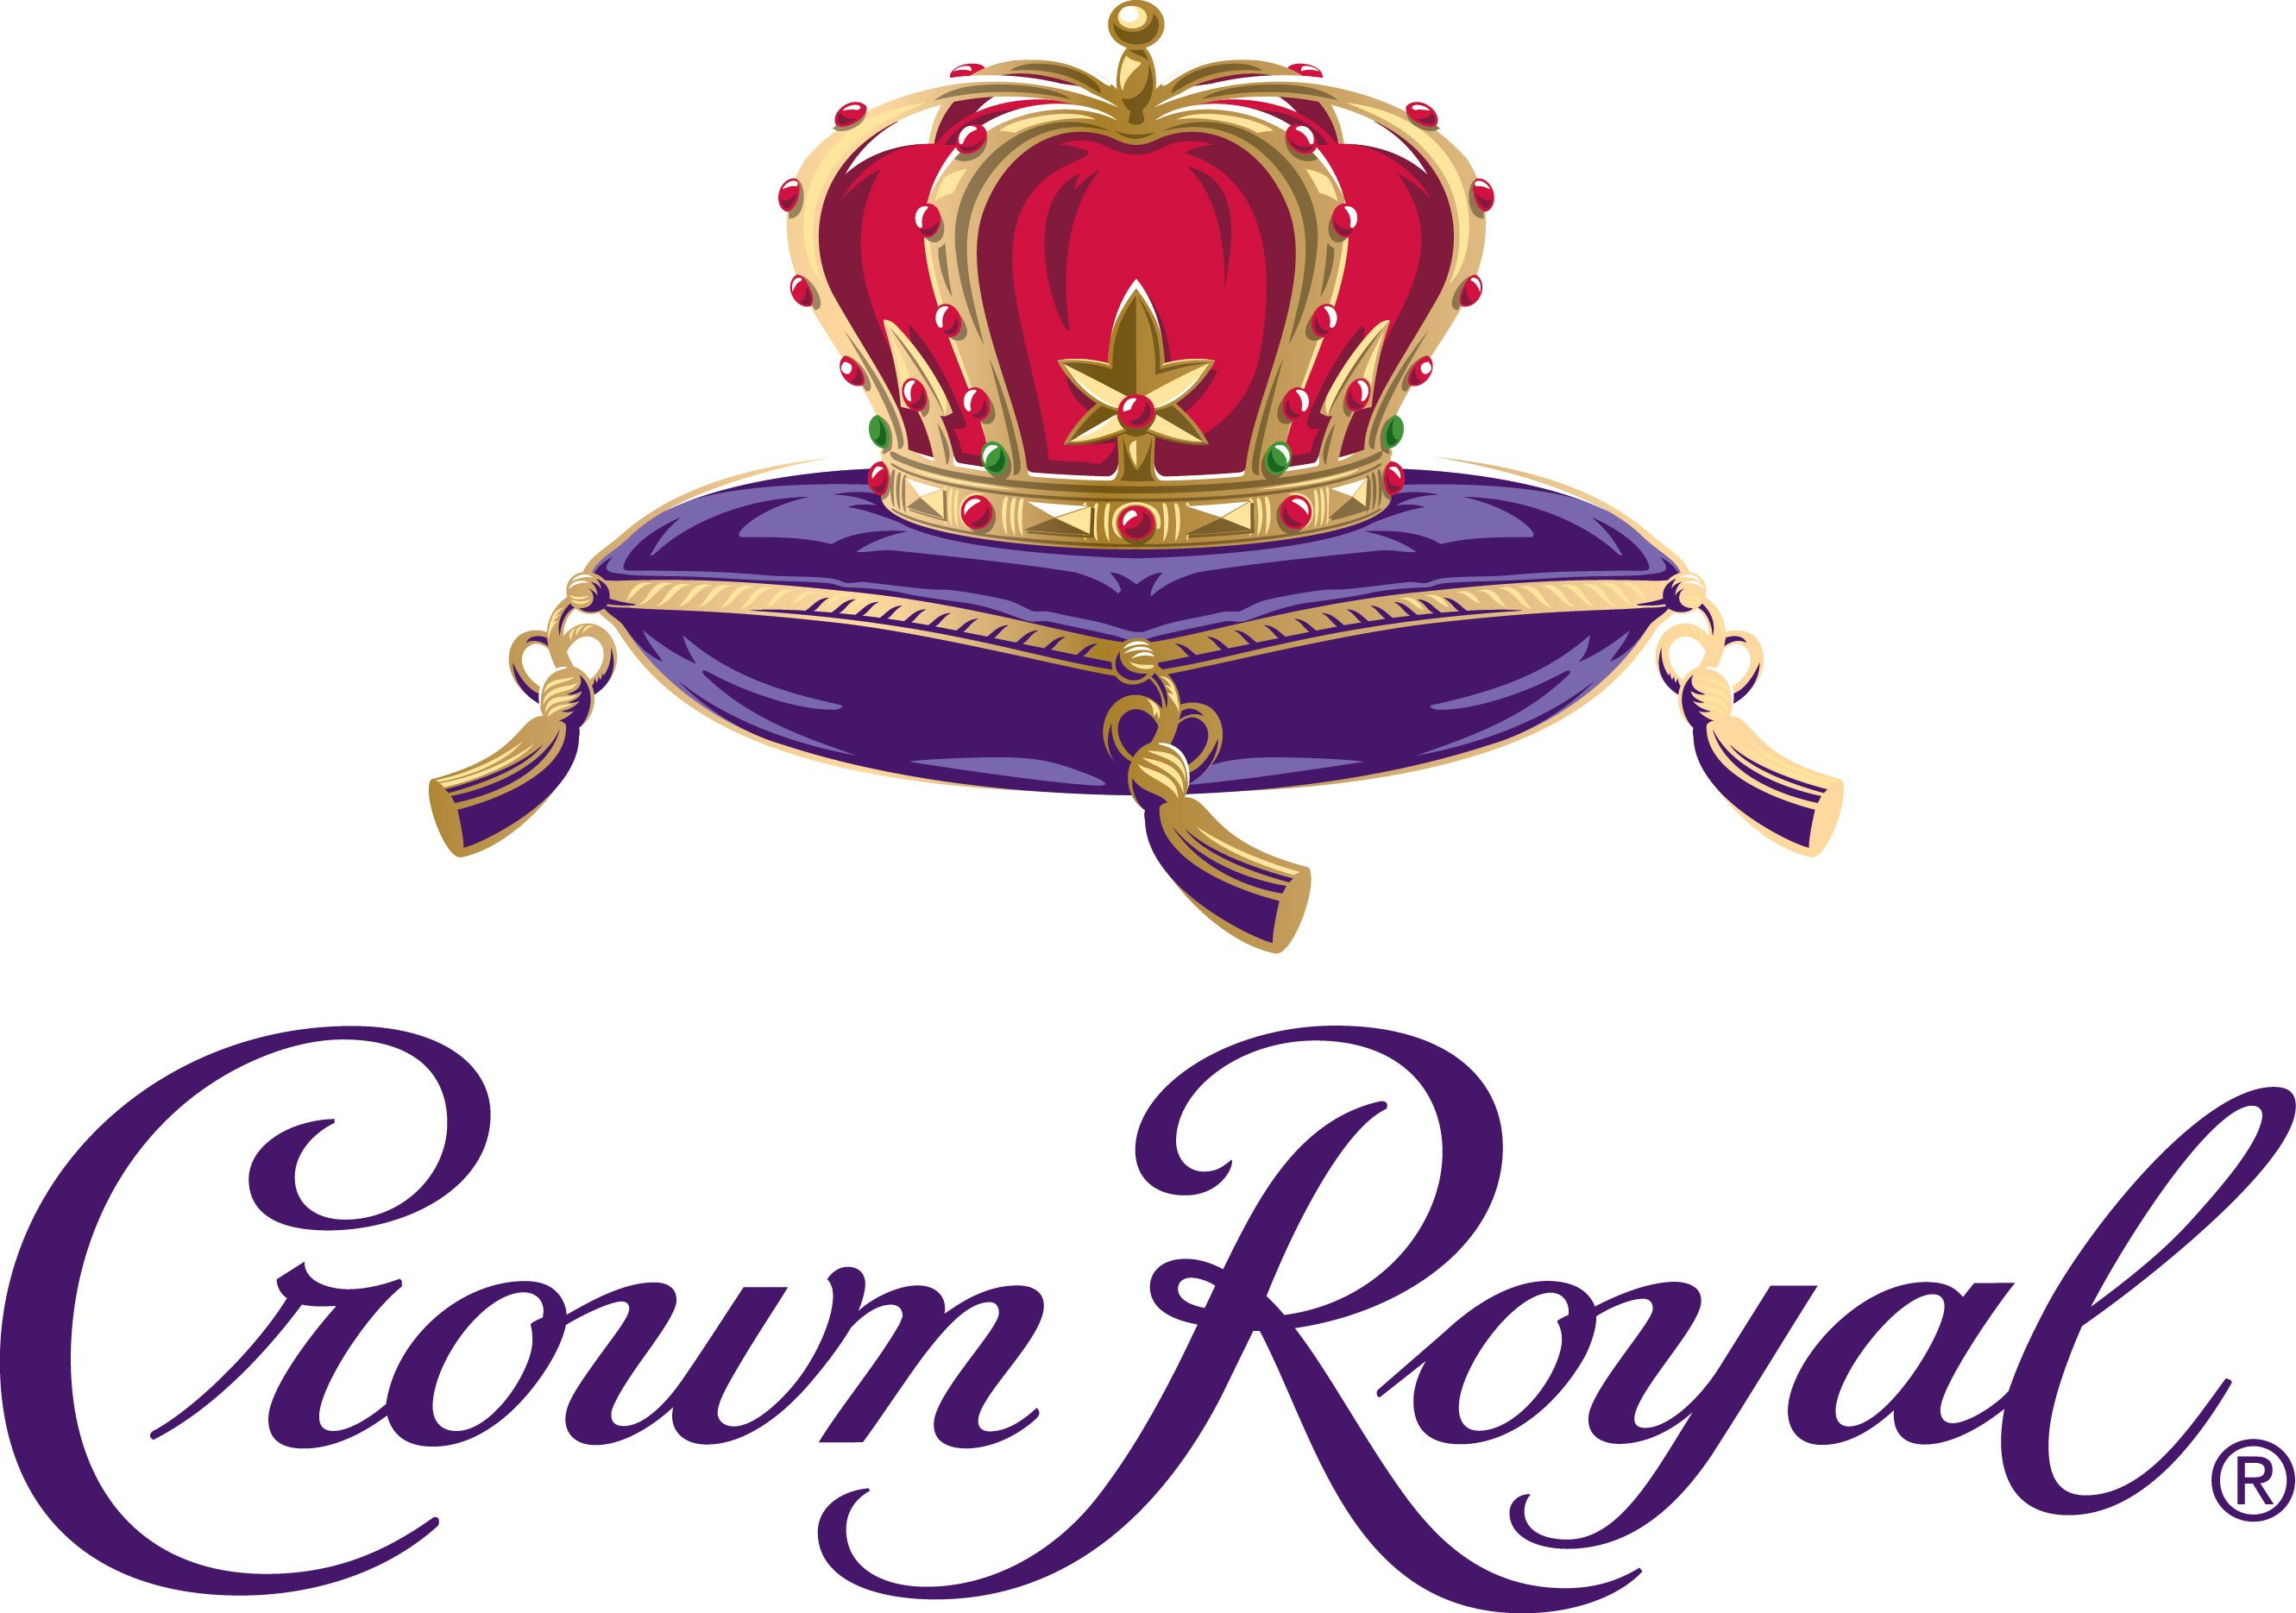 crown royal canadian whisky alcohol wallpaper 2661x1870